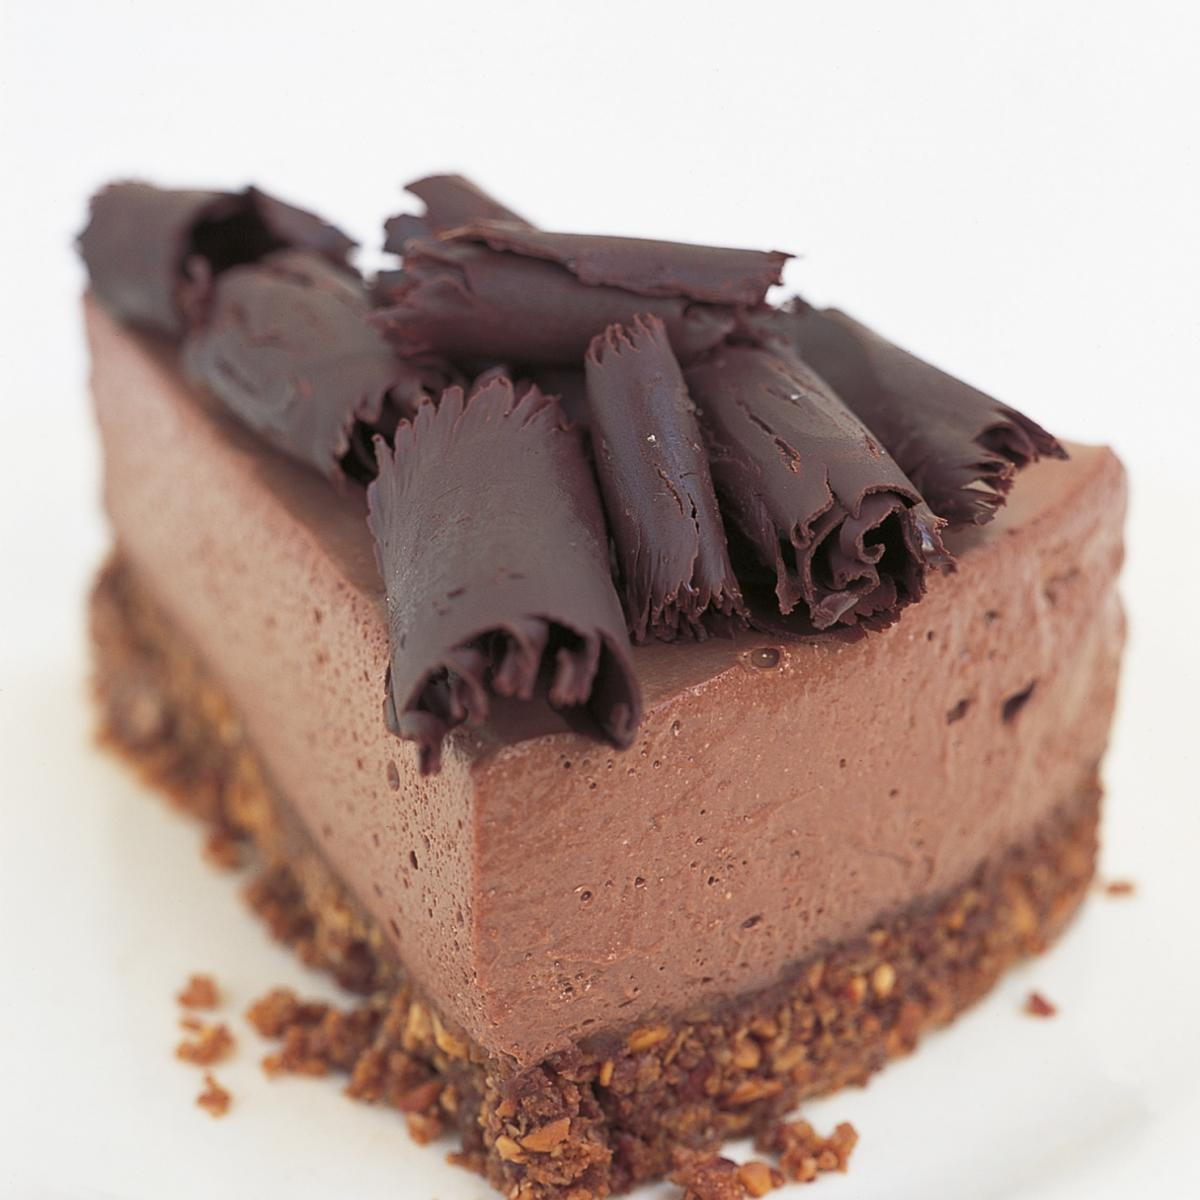 A picture of Delia's Chocolate Ricotta Cheesecake recipe